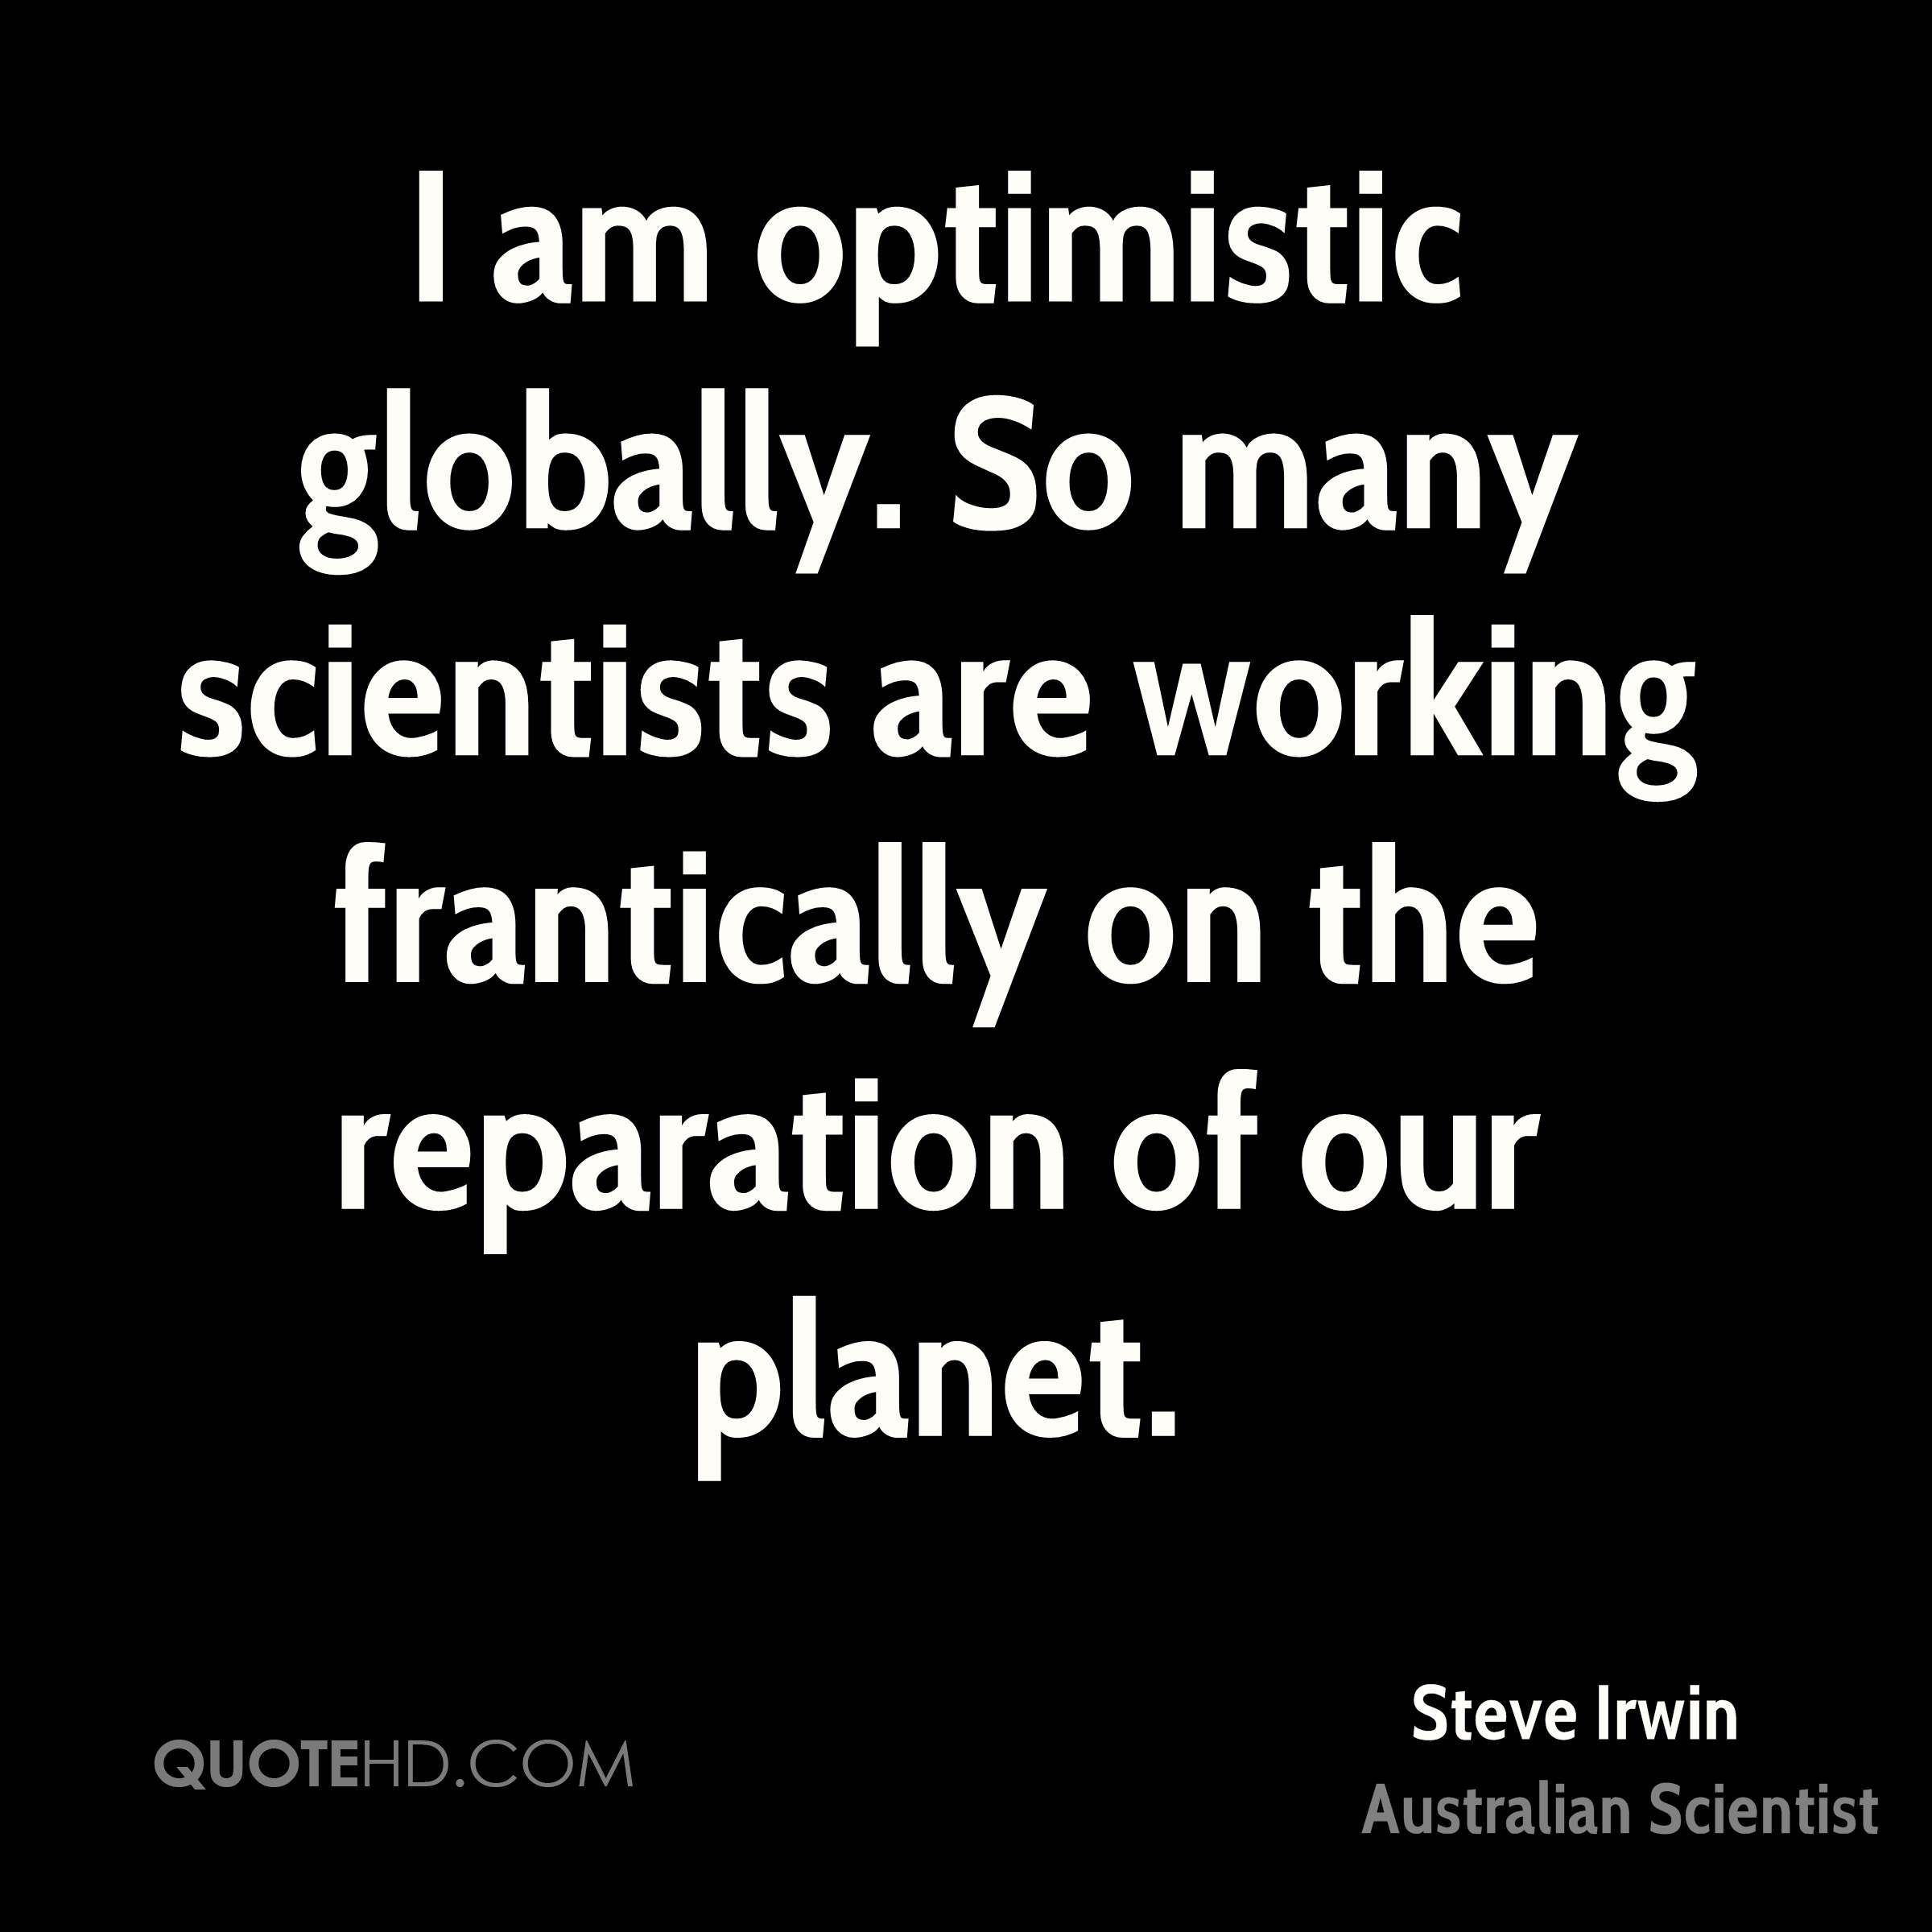 I am optimistic globally. So many scientists are working frantically on the reparation of our planet.